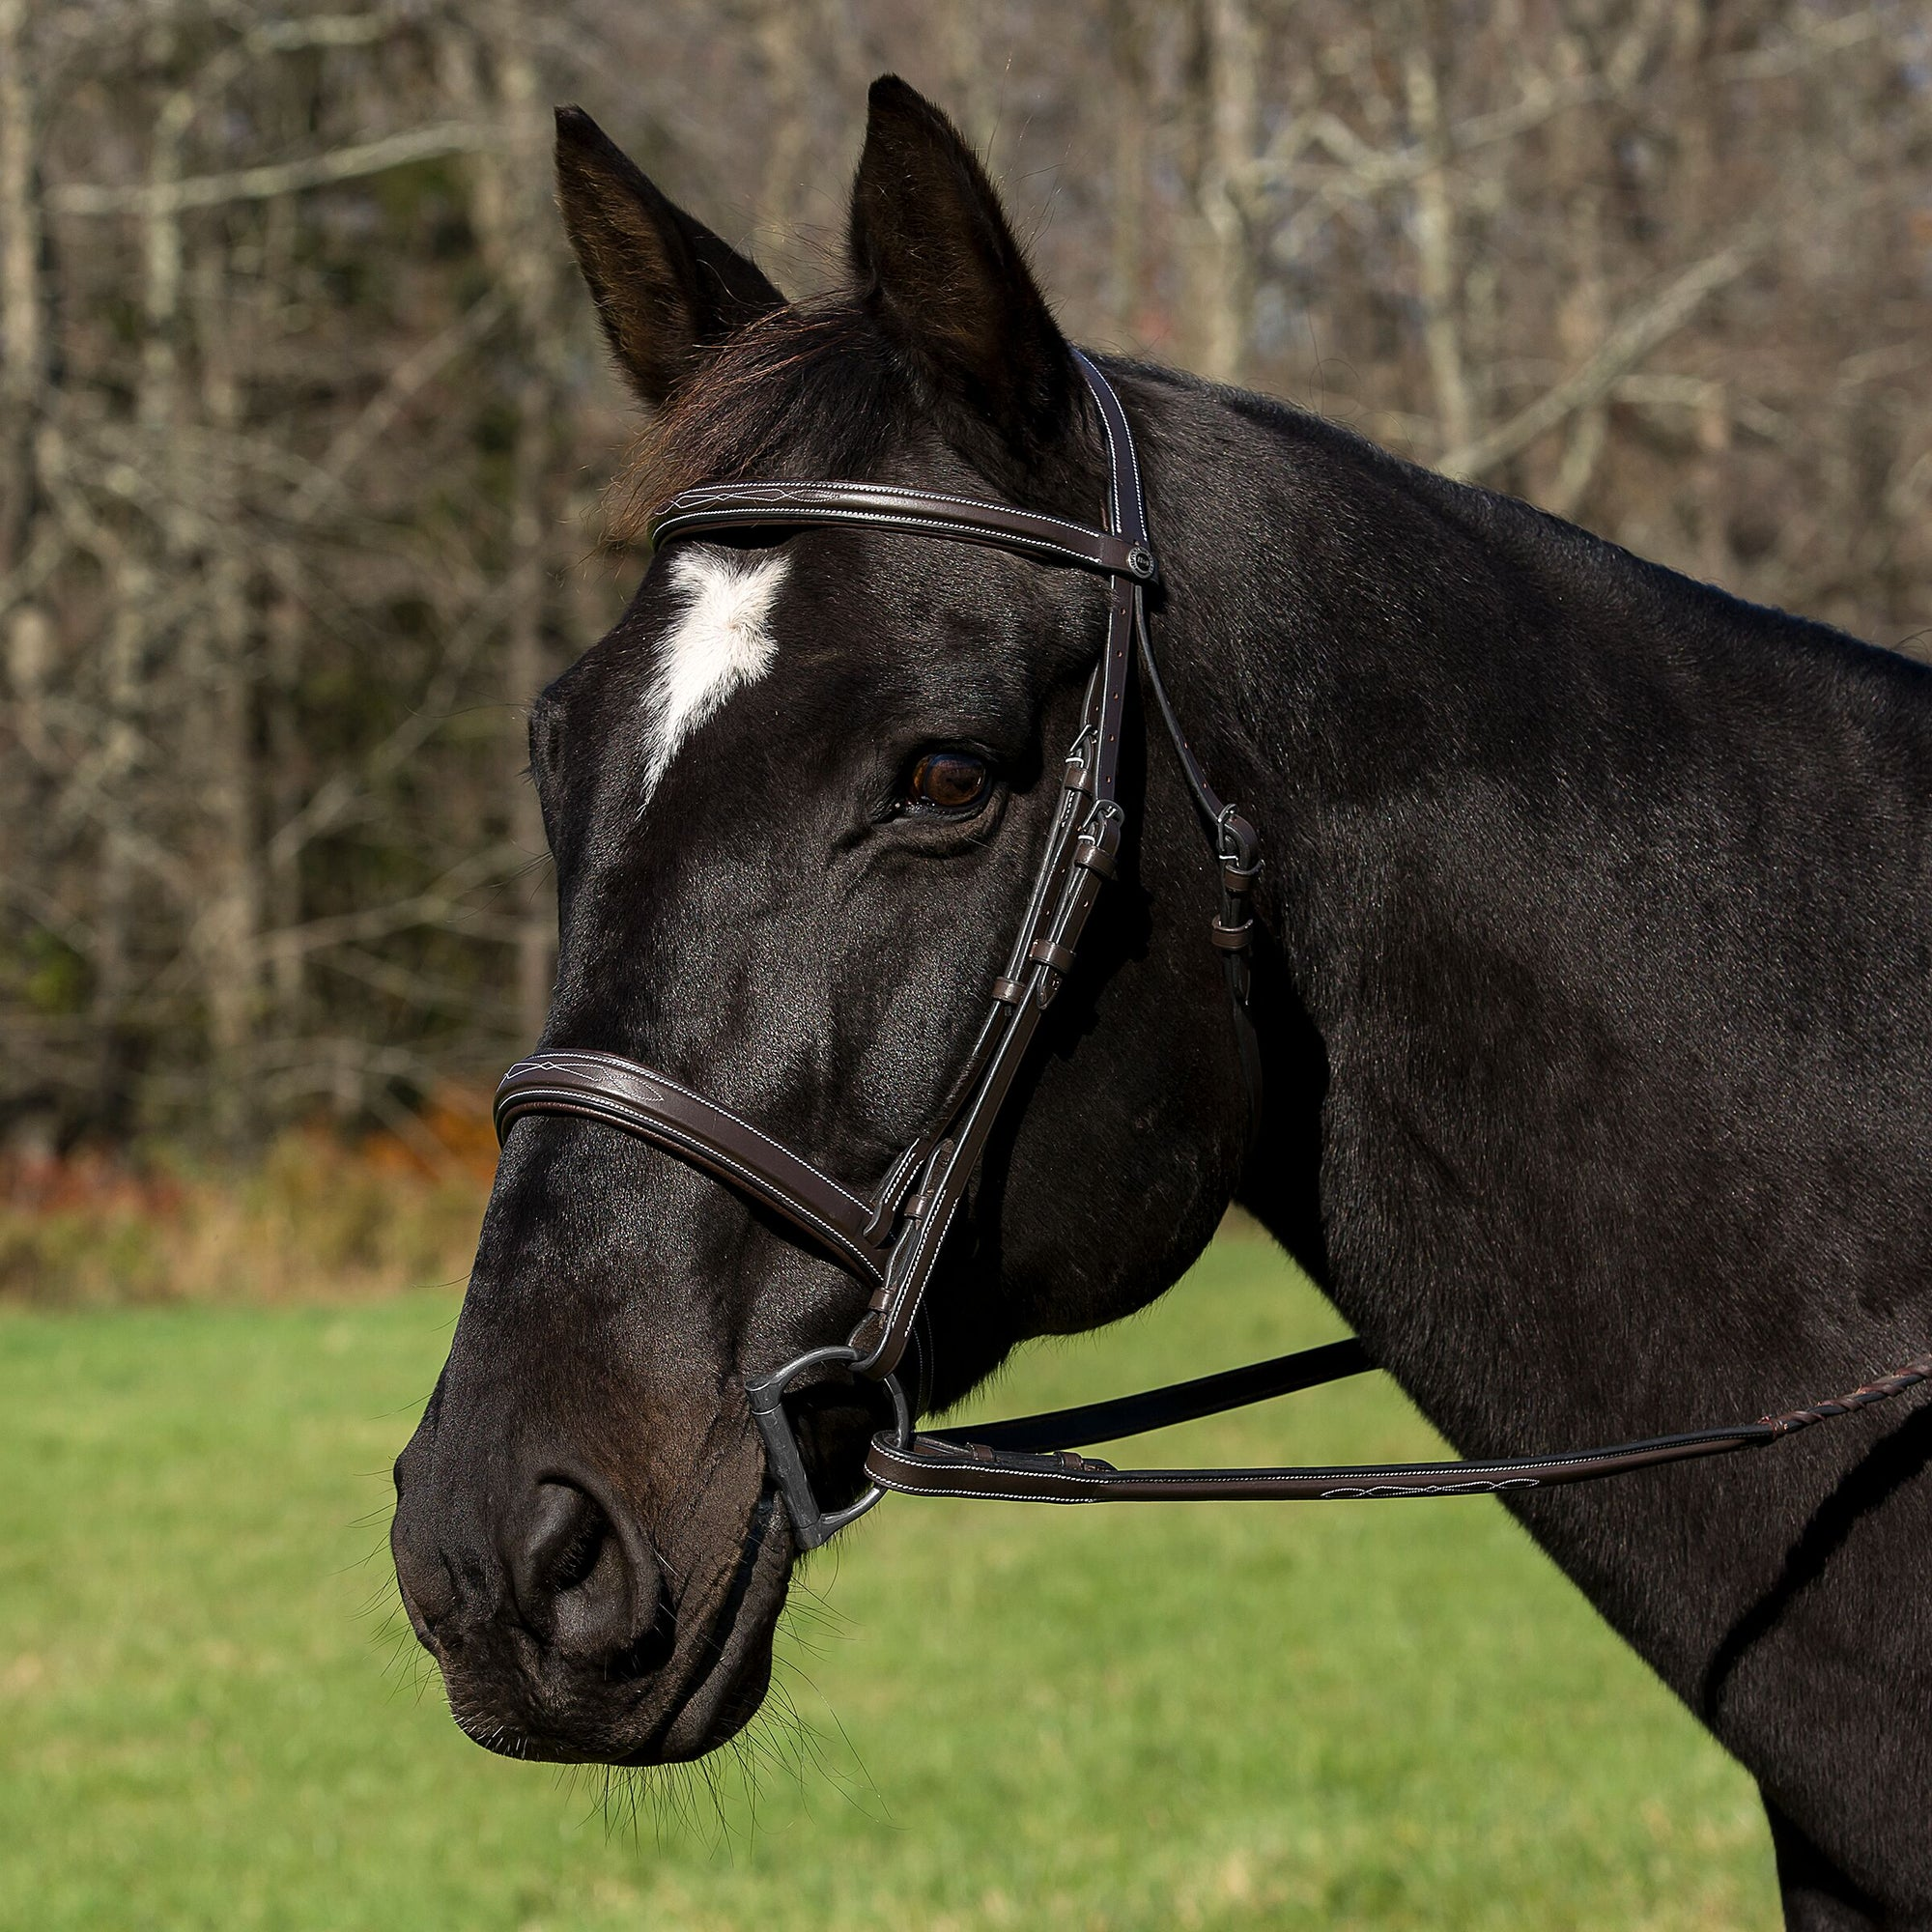 Pro Mono Crown Bridle with Padded Wide Noseband with Laced Reins - Henri de Rivel - Breeches.com